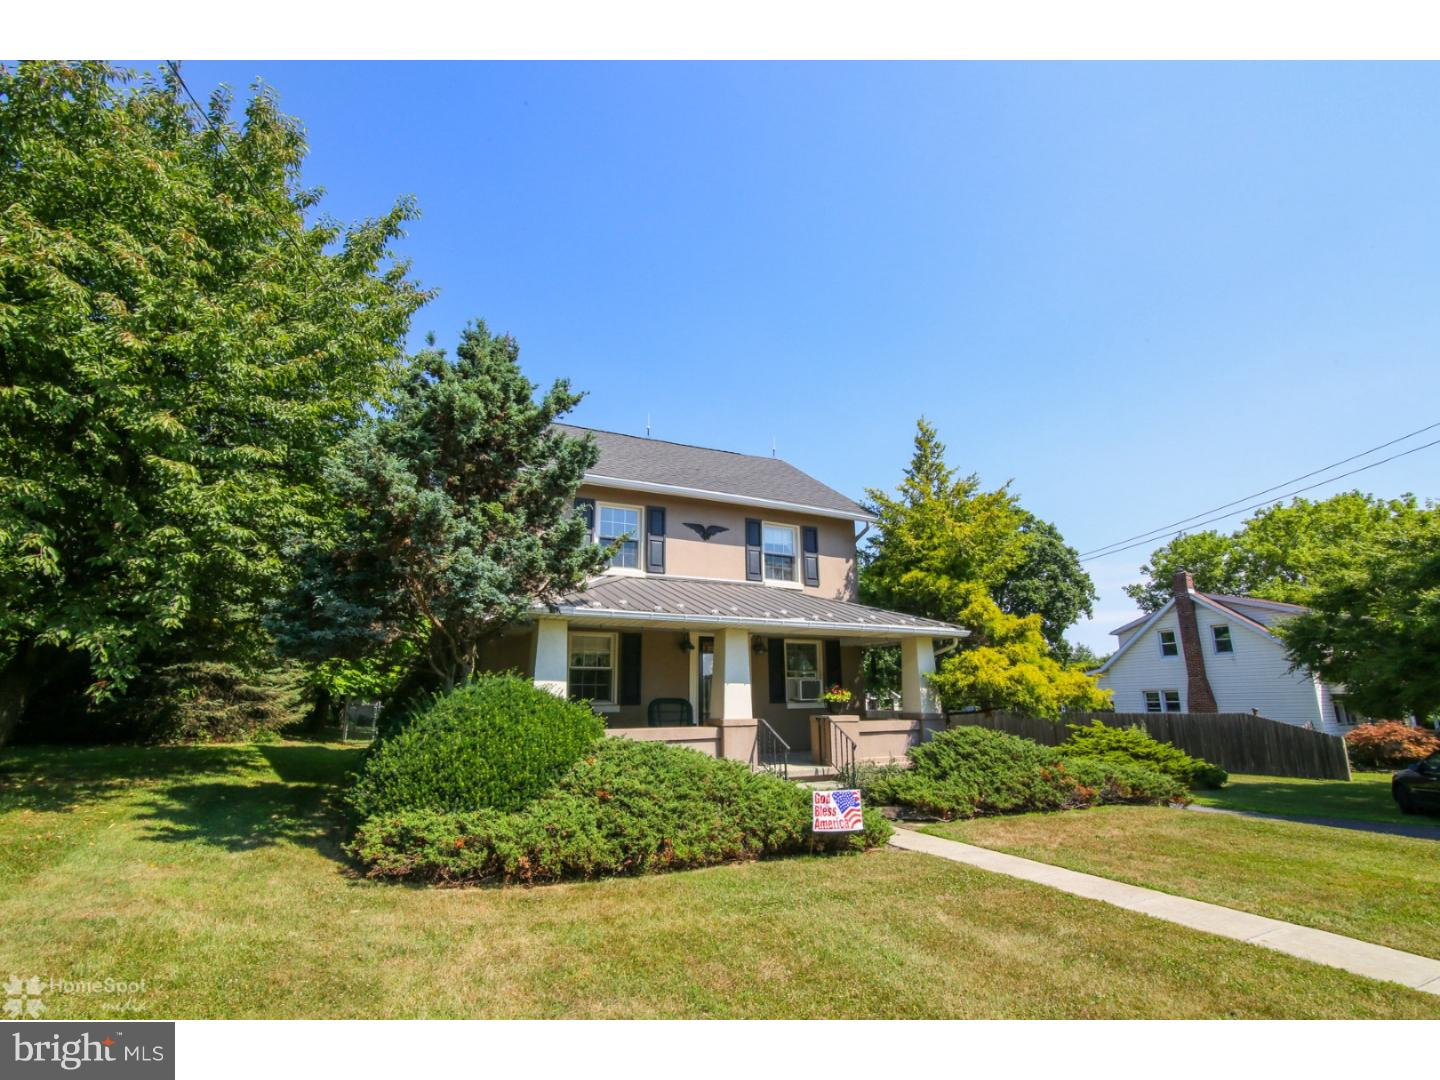 7943 SPRING CREEK ROAD, MACUNGIE, PA 18011